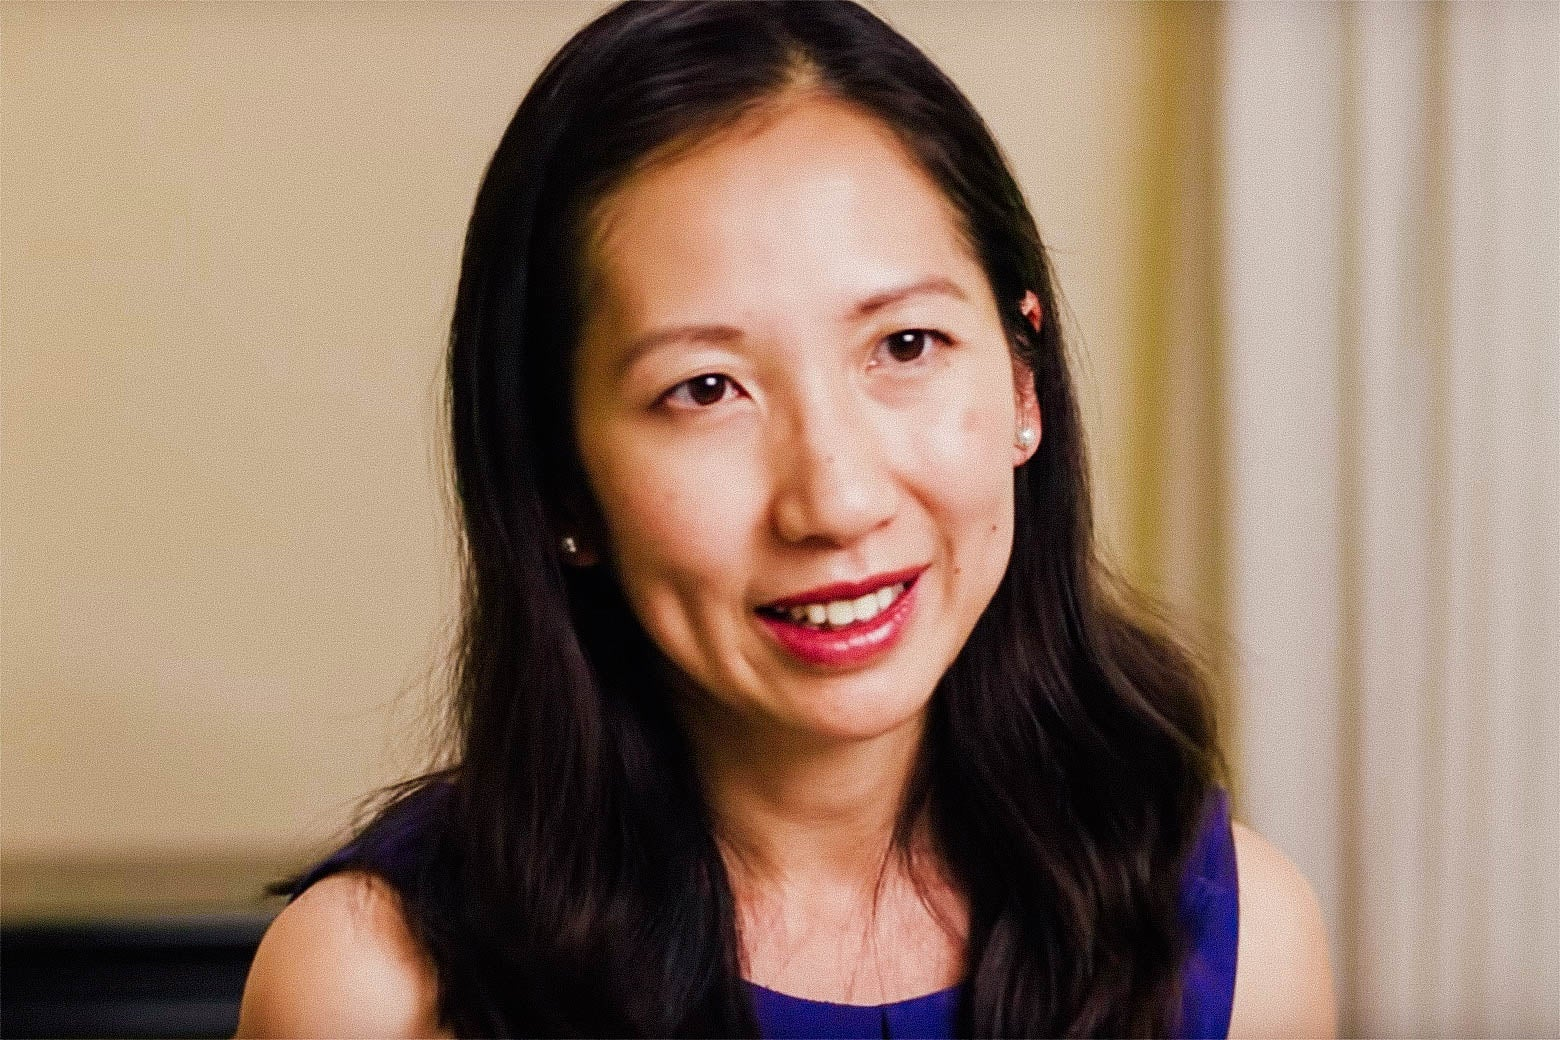 Leana Wen, Planned Parenthood's next president, in a still from their video announcing her hiring.